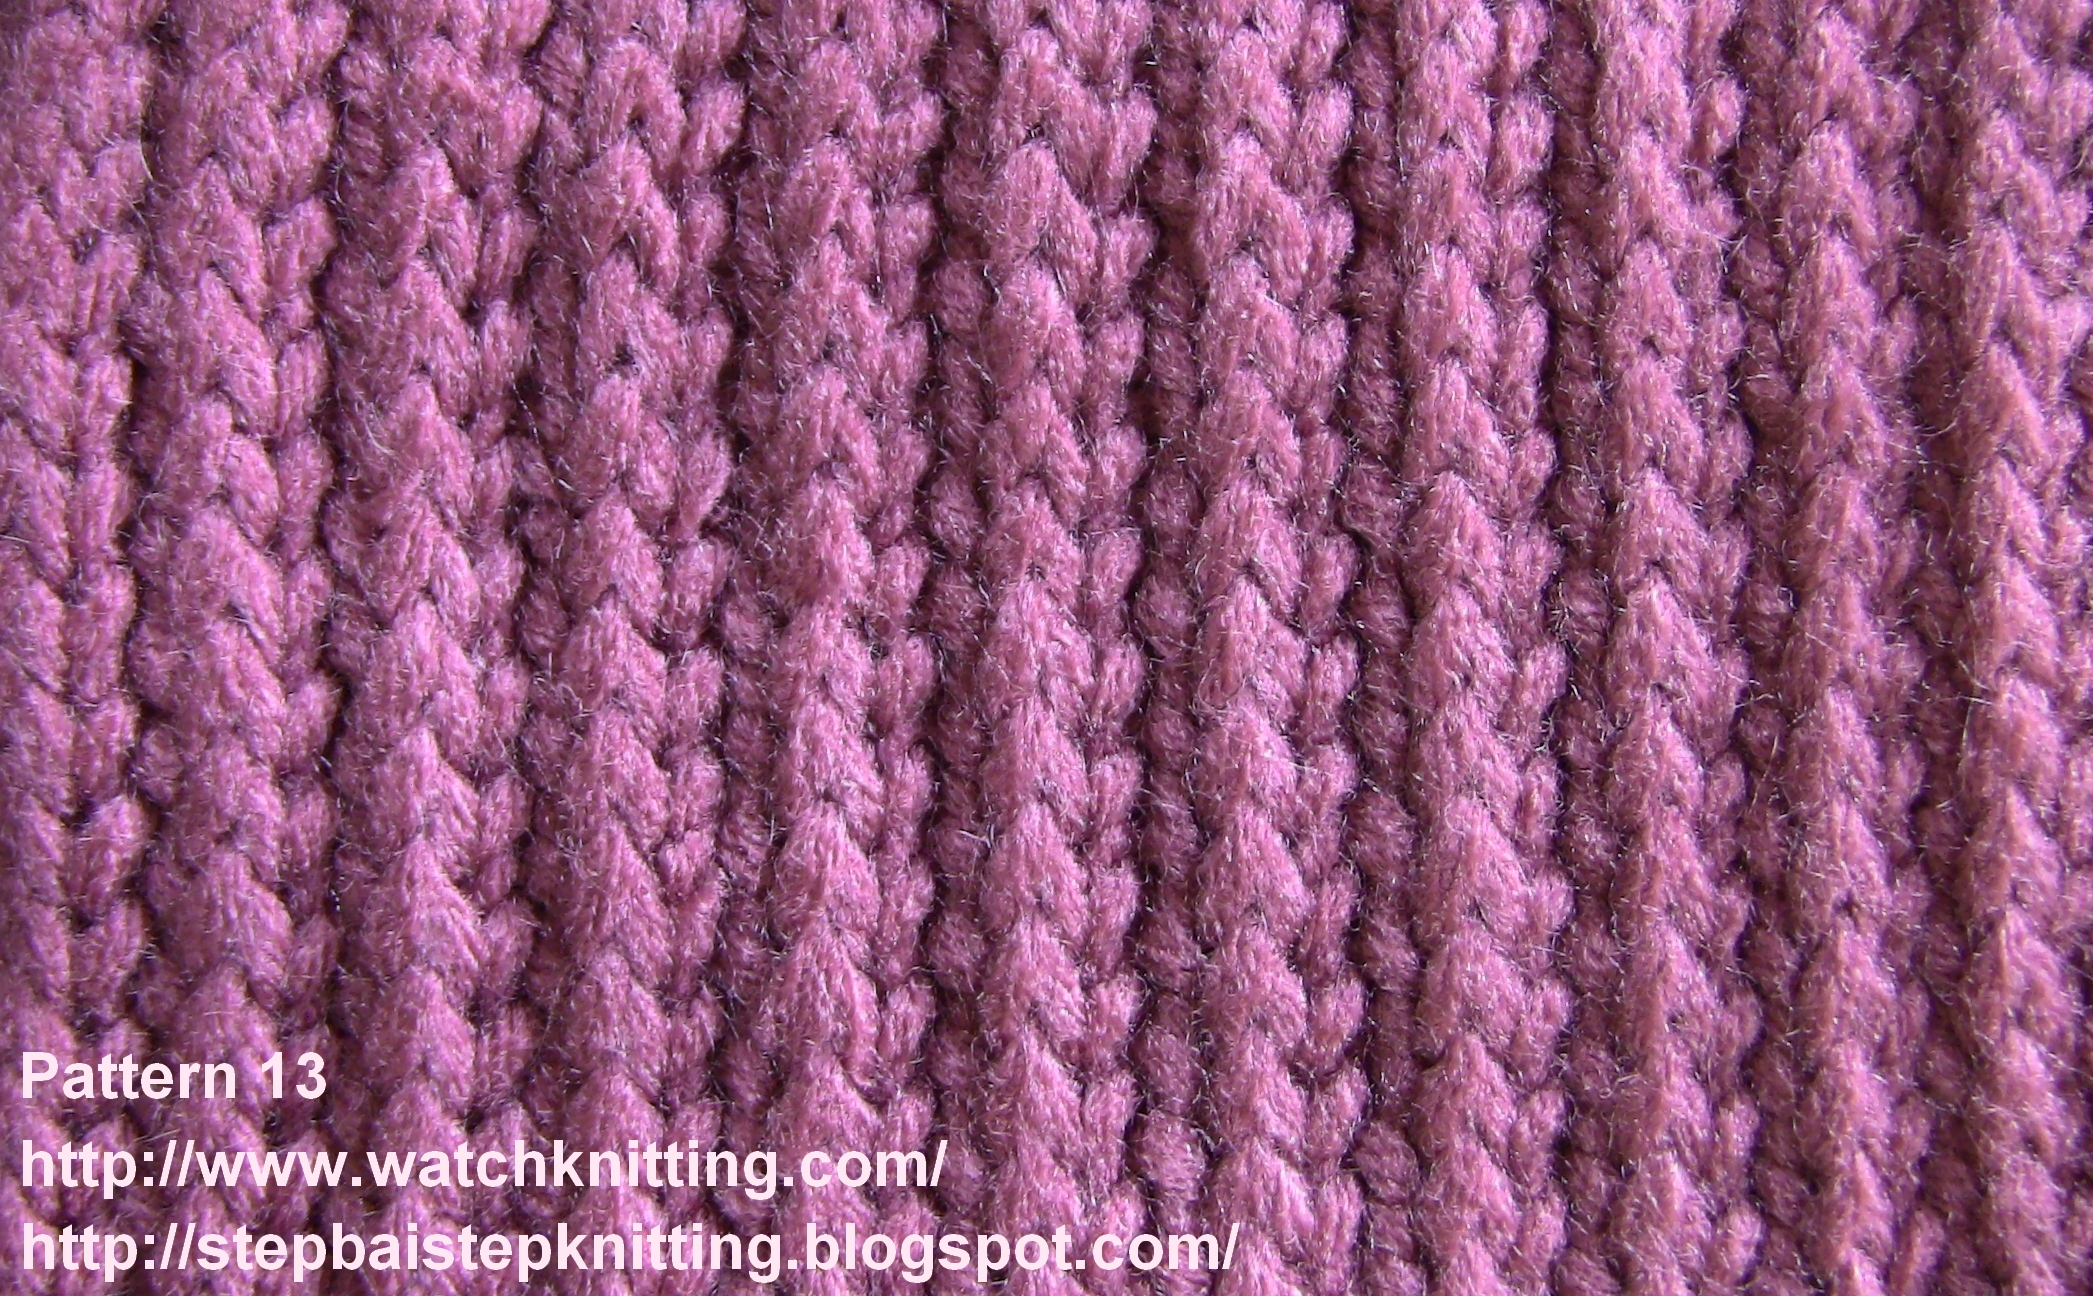 Simple Knitting models by basic stitches - Pattern 13 ...